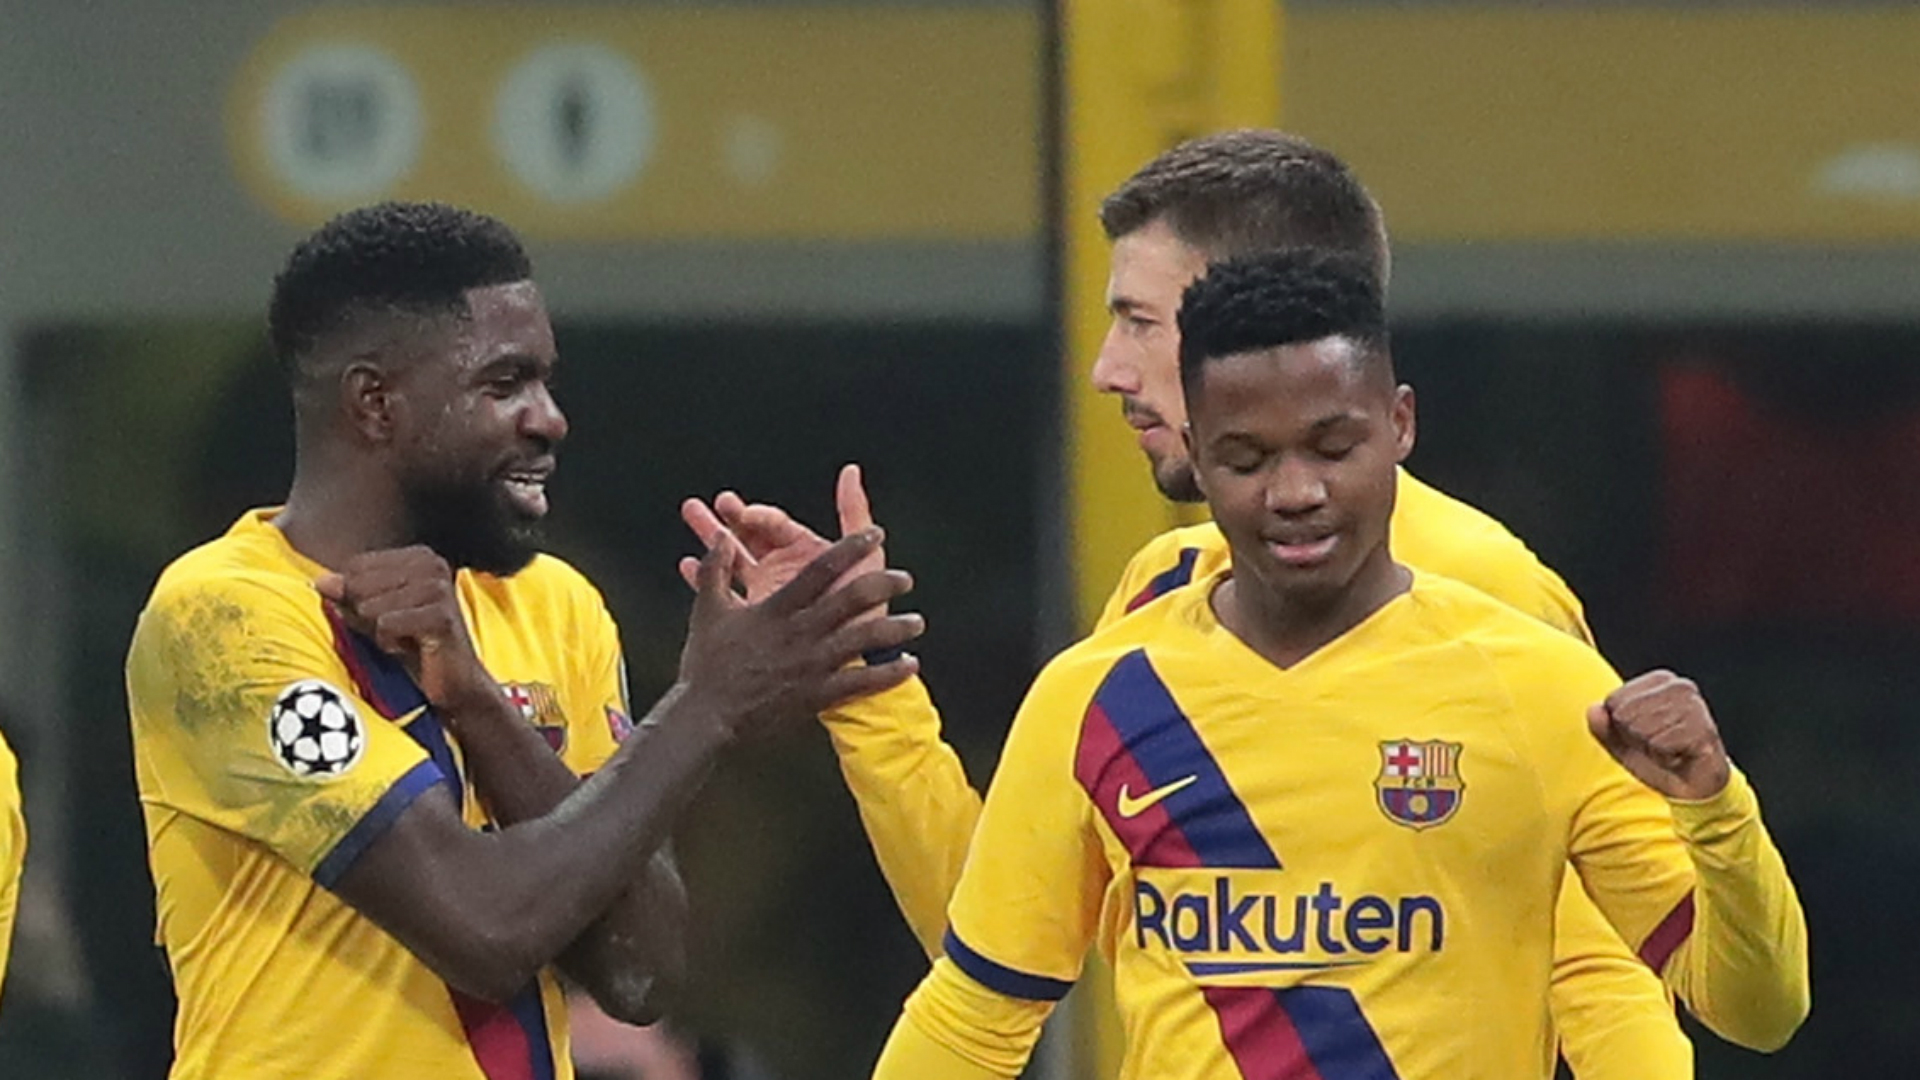 Barcelona star Fati becomes Champions League's youngest goalscorer